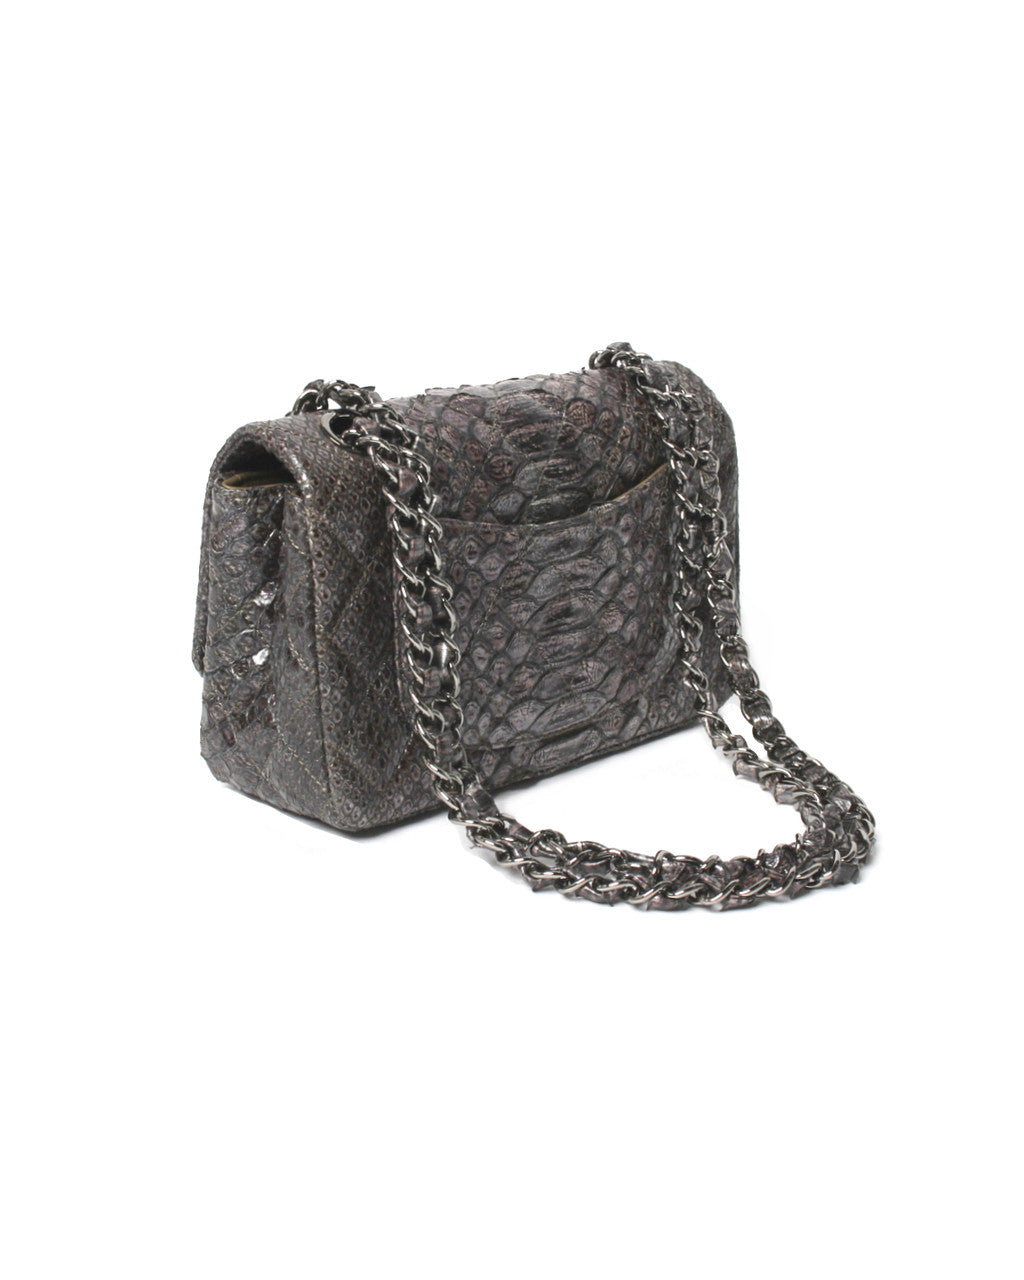 Chanel Metallic Python Flap Bag with Swarovski Crystals